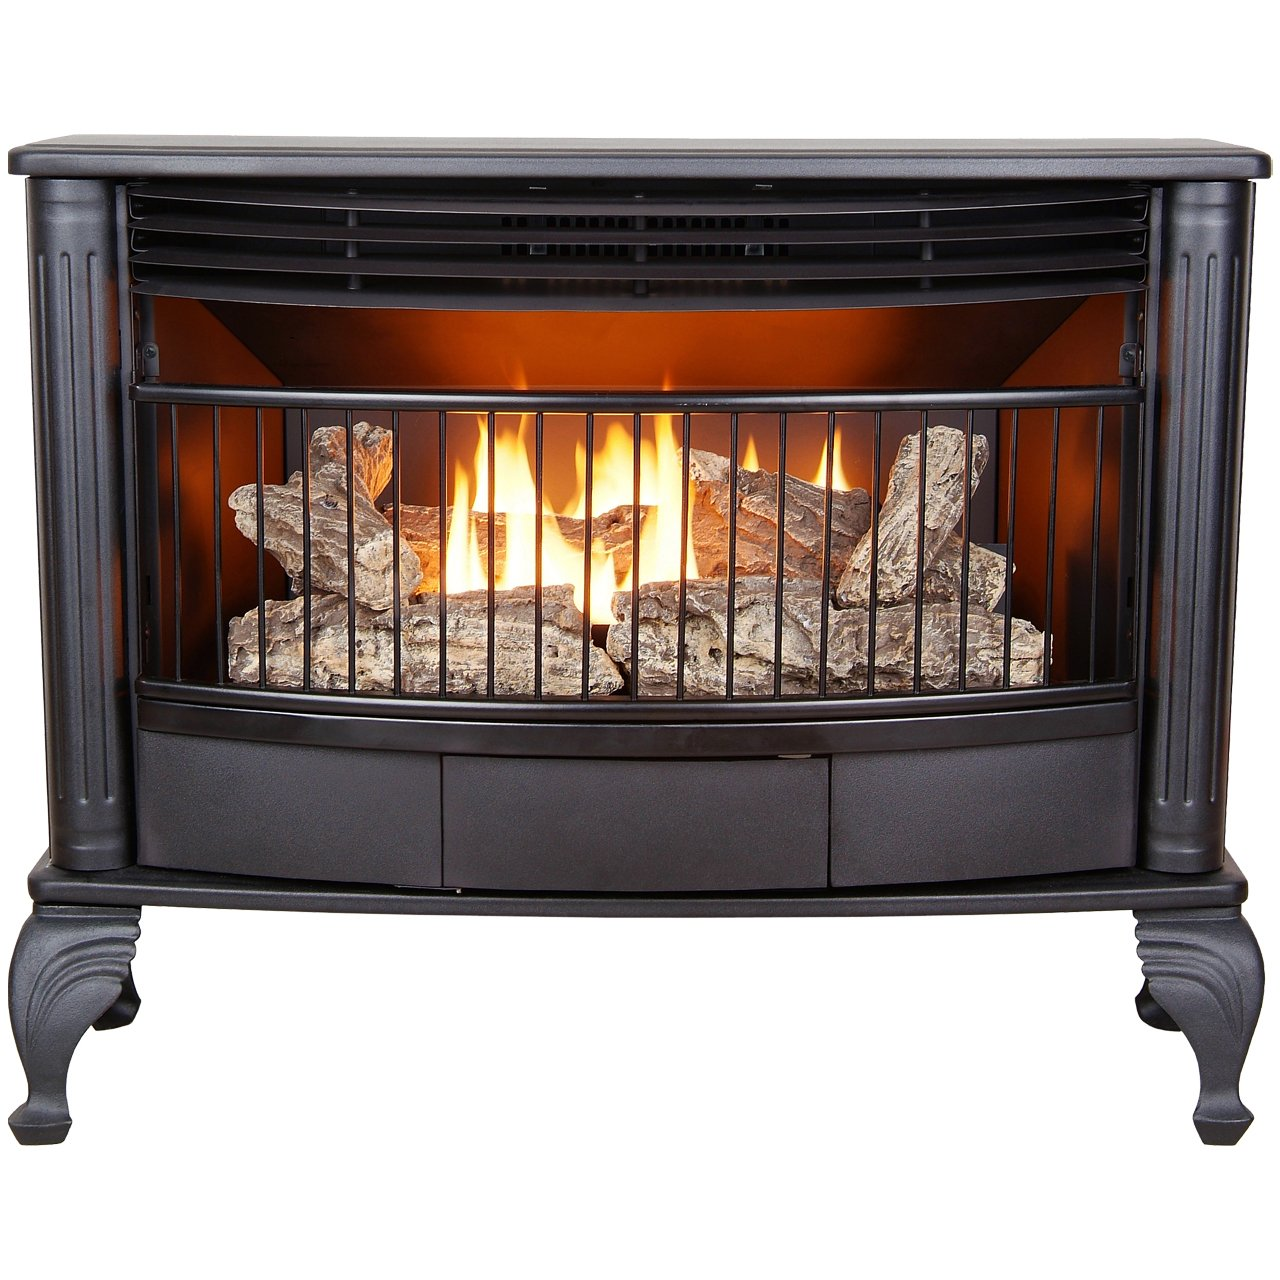 amazon com procom vent free dual fuel stove 25 000 btu model